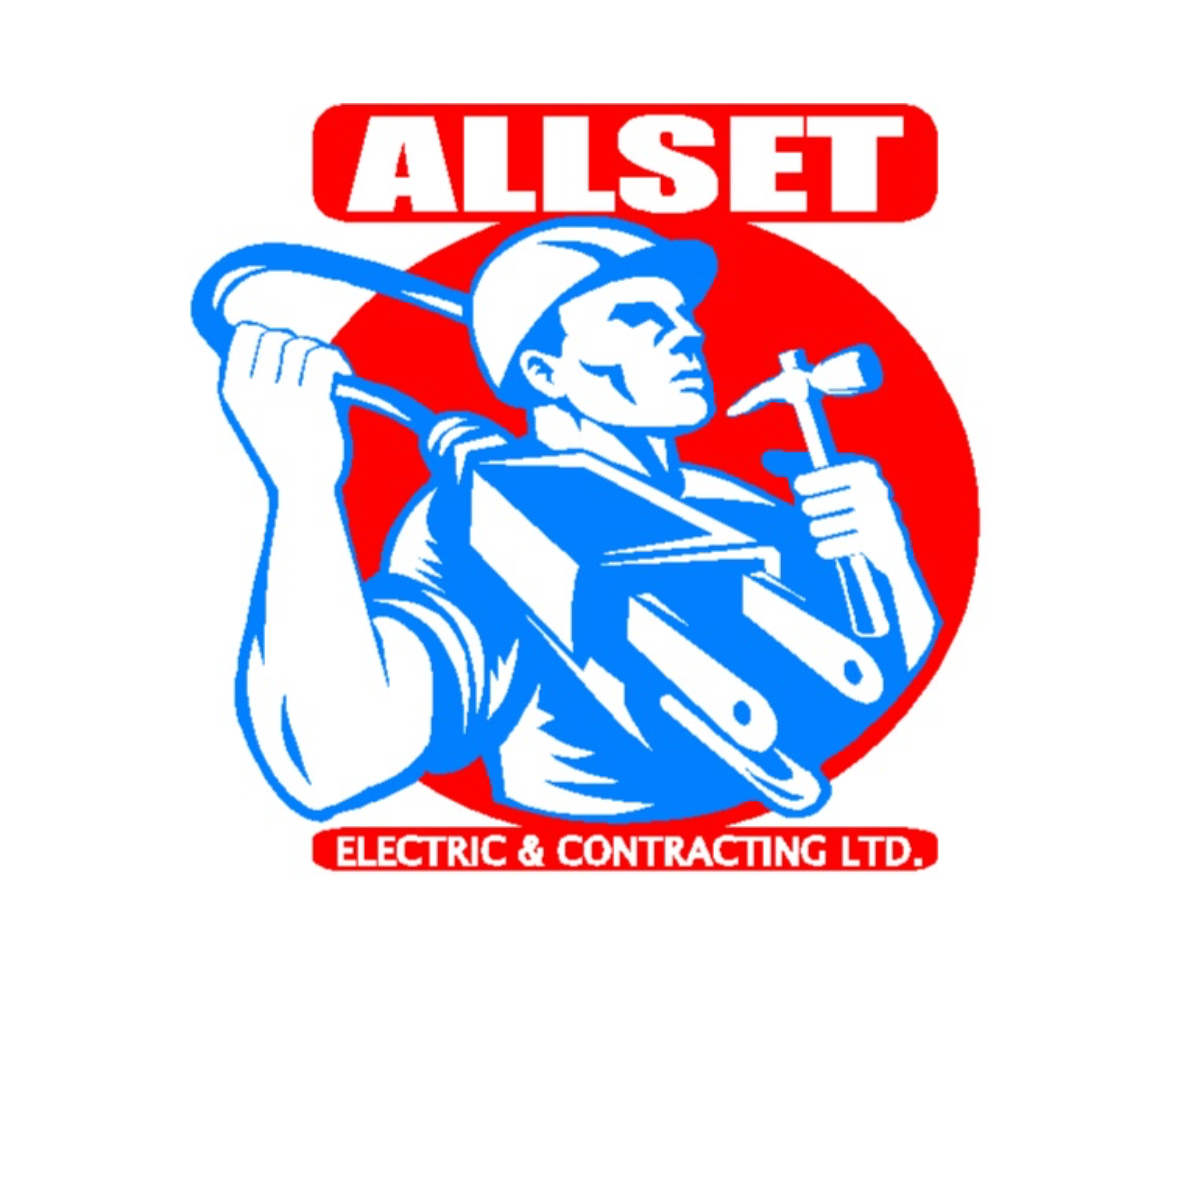 Allset Electric